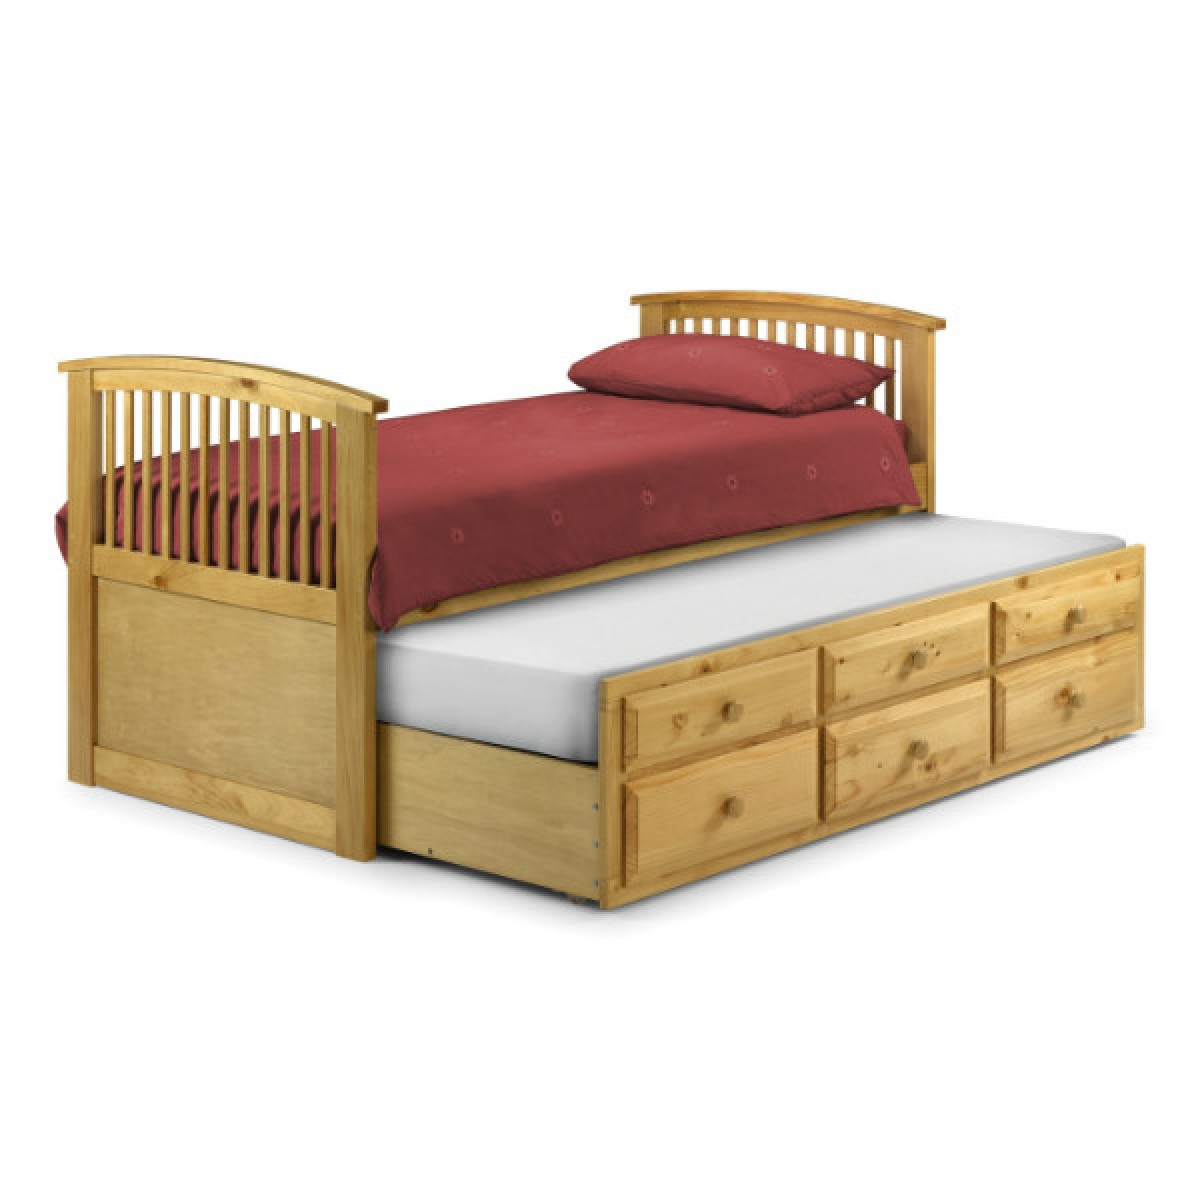 julian bowen hornblower cabin bed hor001 pine. Black Bedroom Furniture Sets. Home Design Ideas